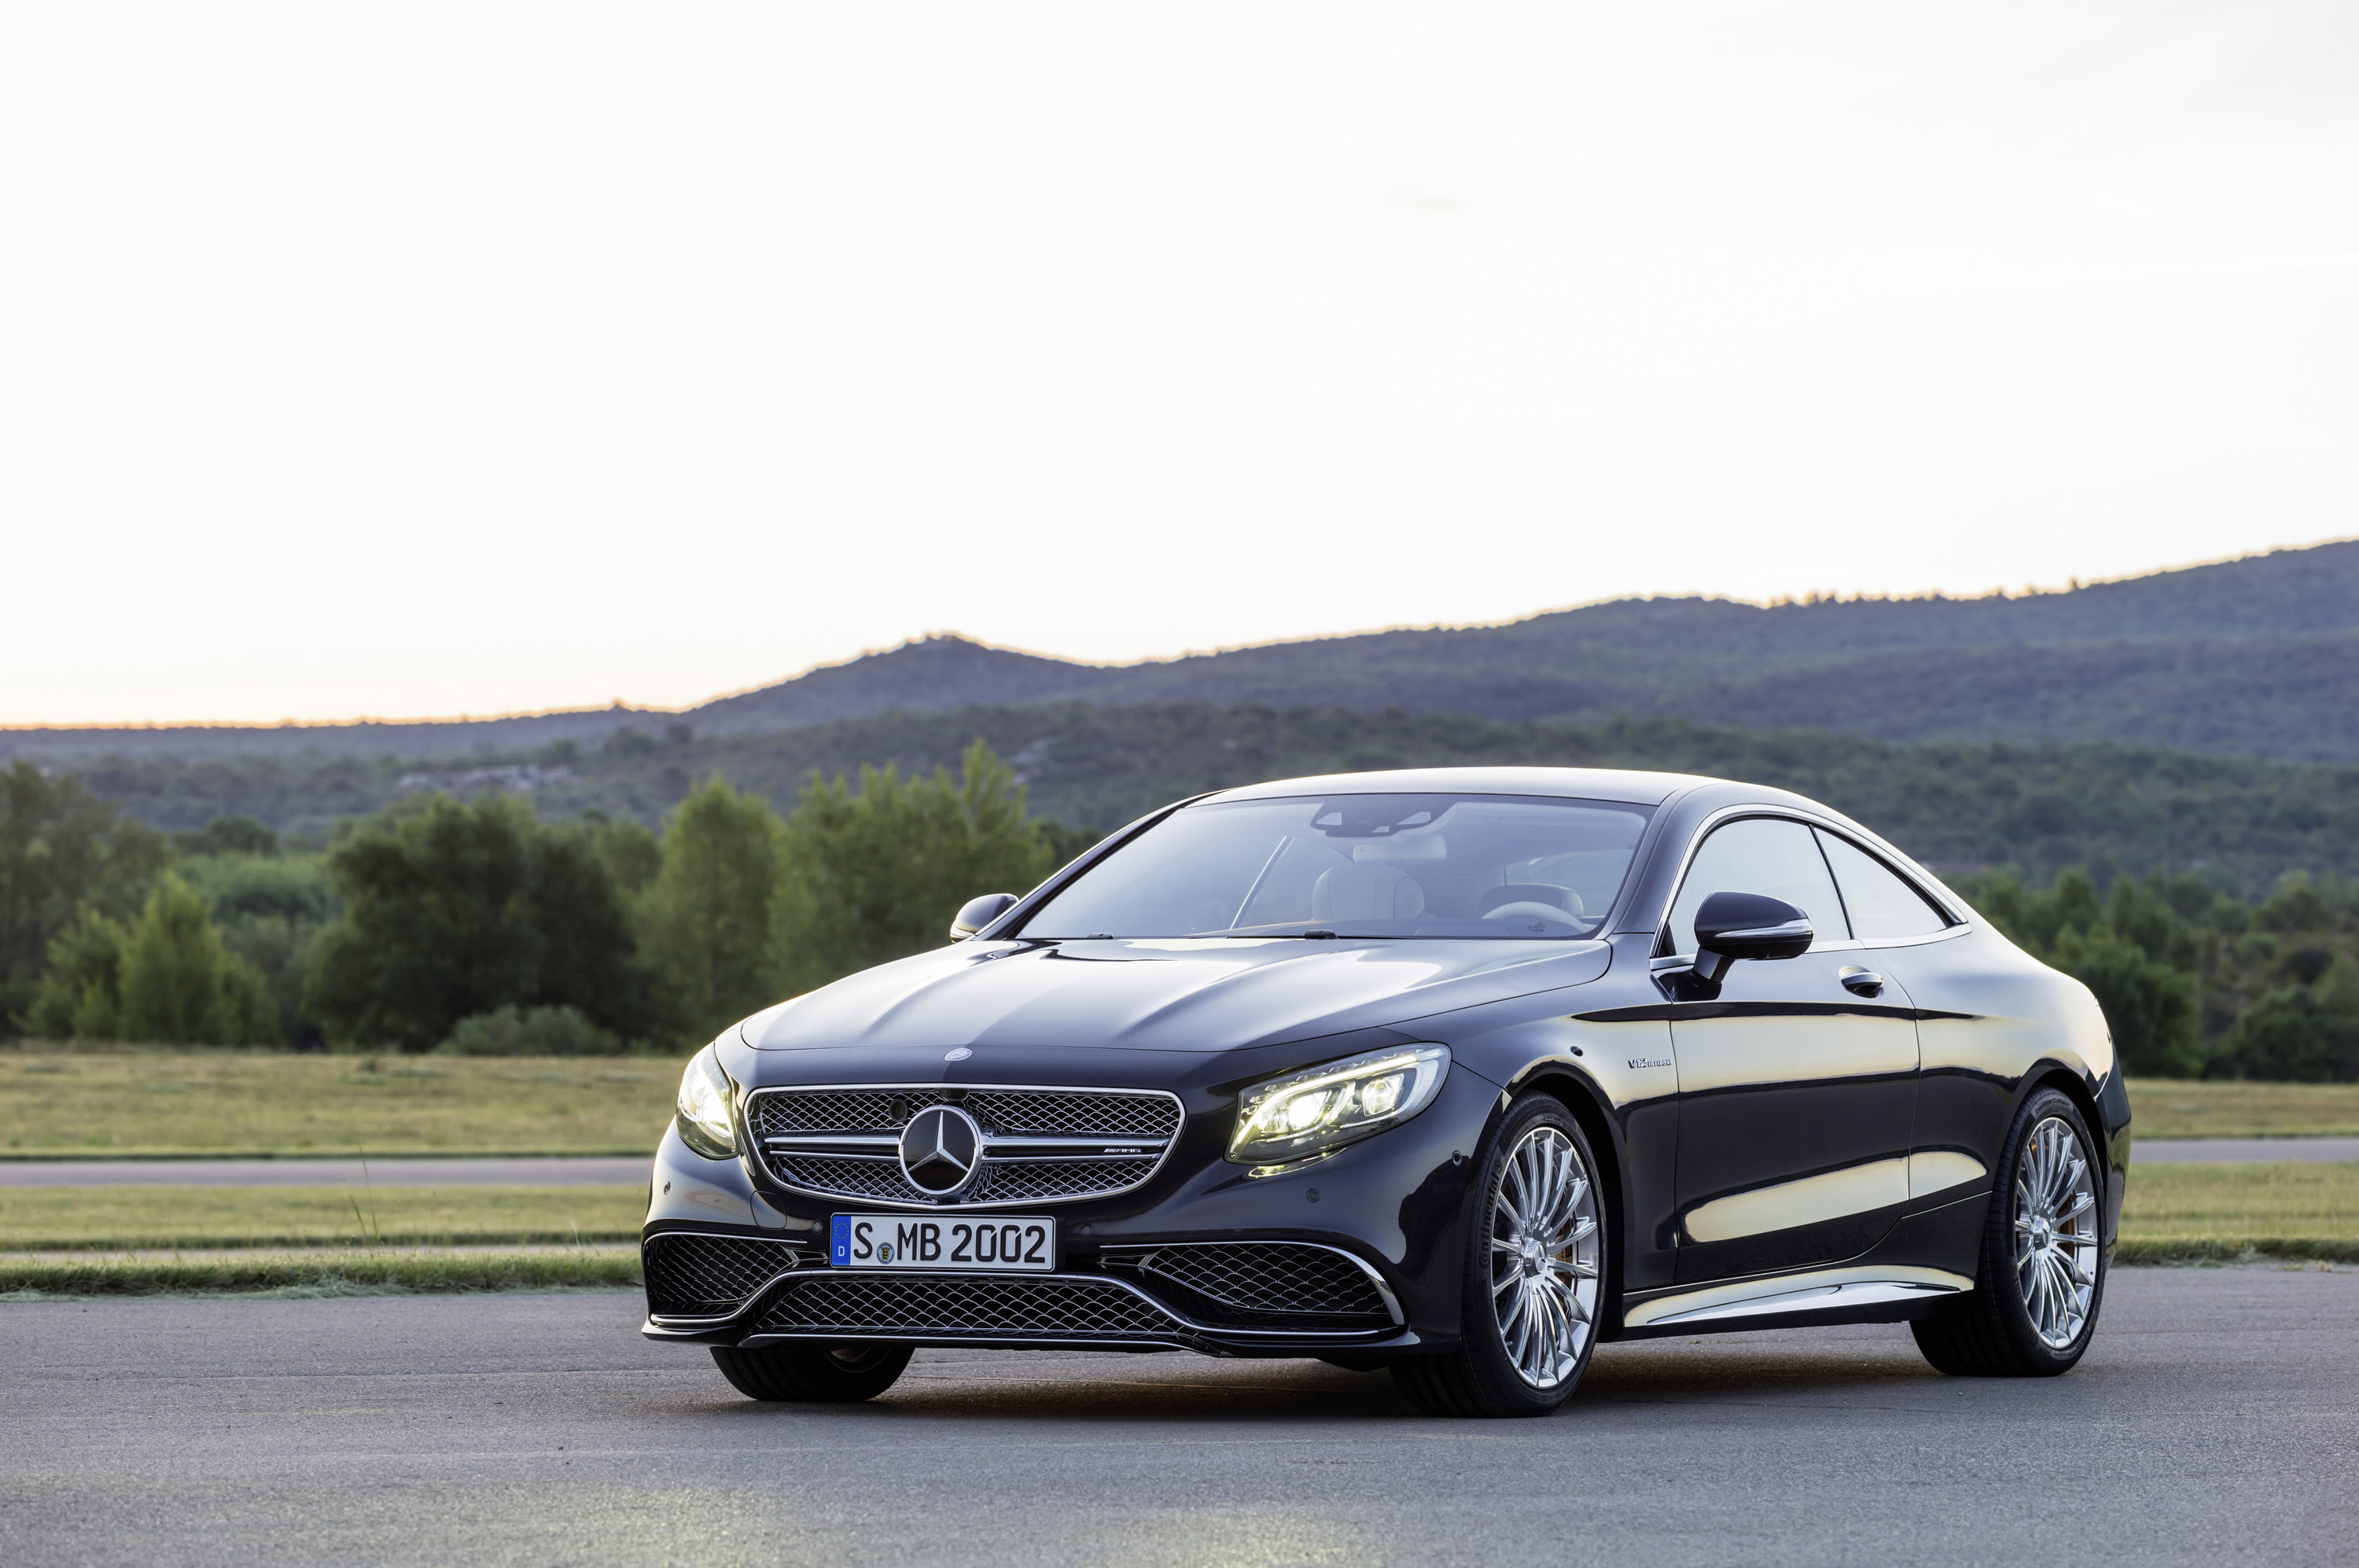 Mercedes benz s65 amg coupe at the 2014 moscow motor show for The price of mercedes benz